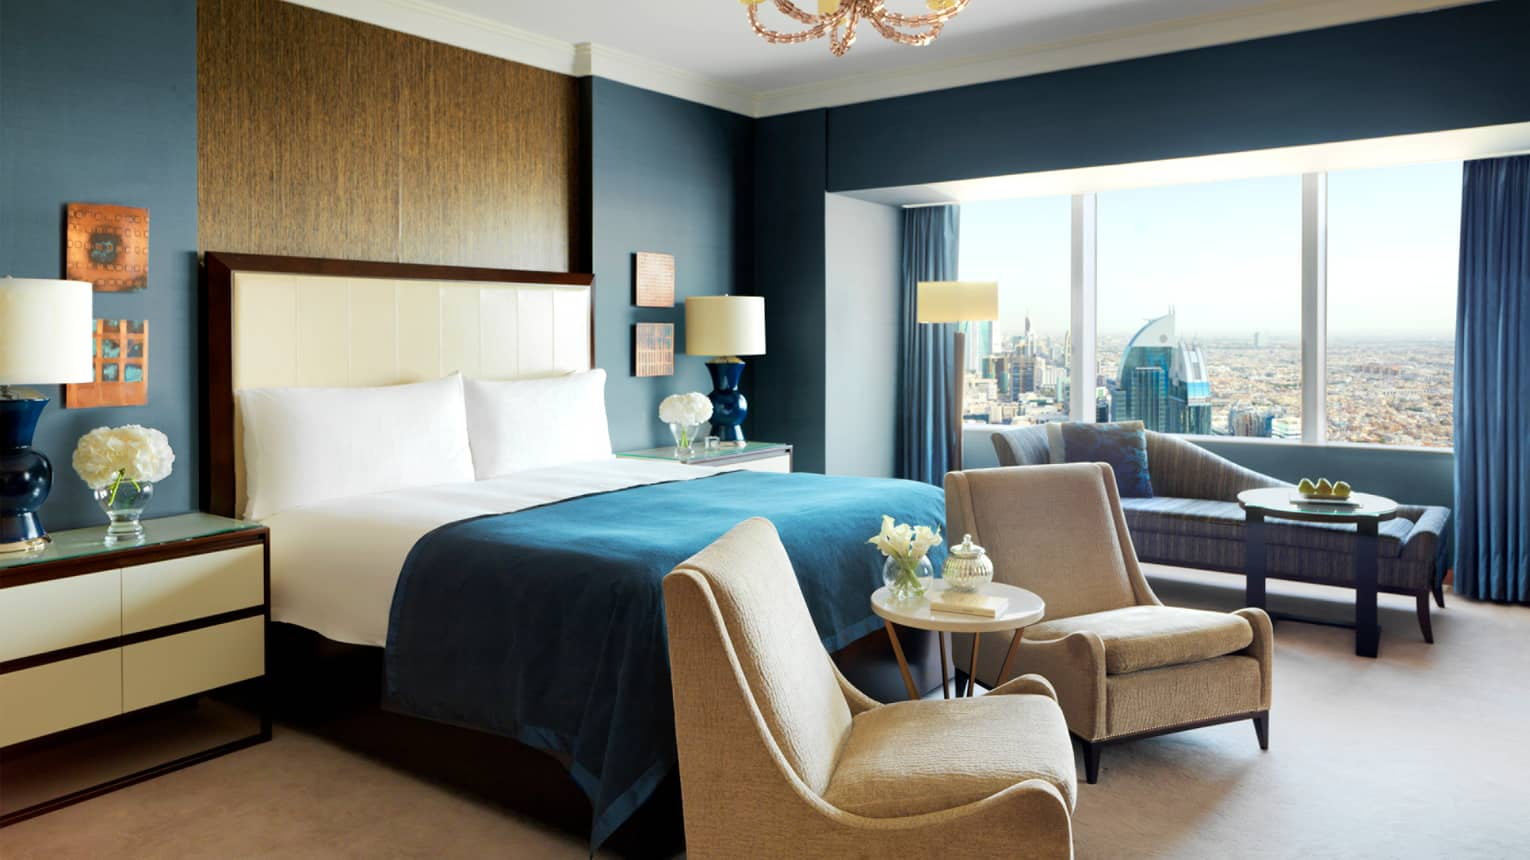 Presidential Suite with bright blue and beige decor, tall wood panel behind headboard, two armchairs, chaise